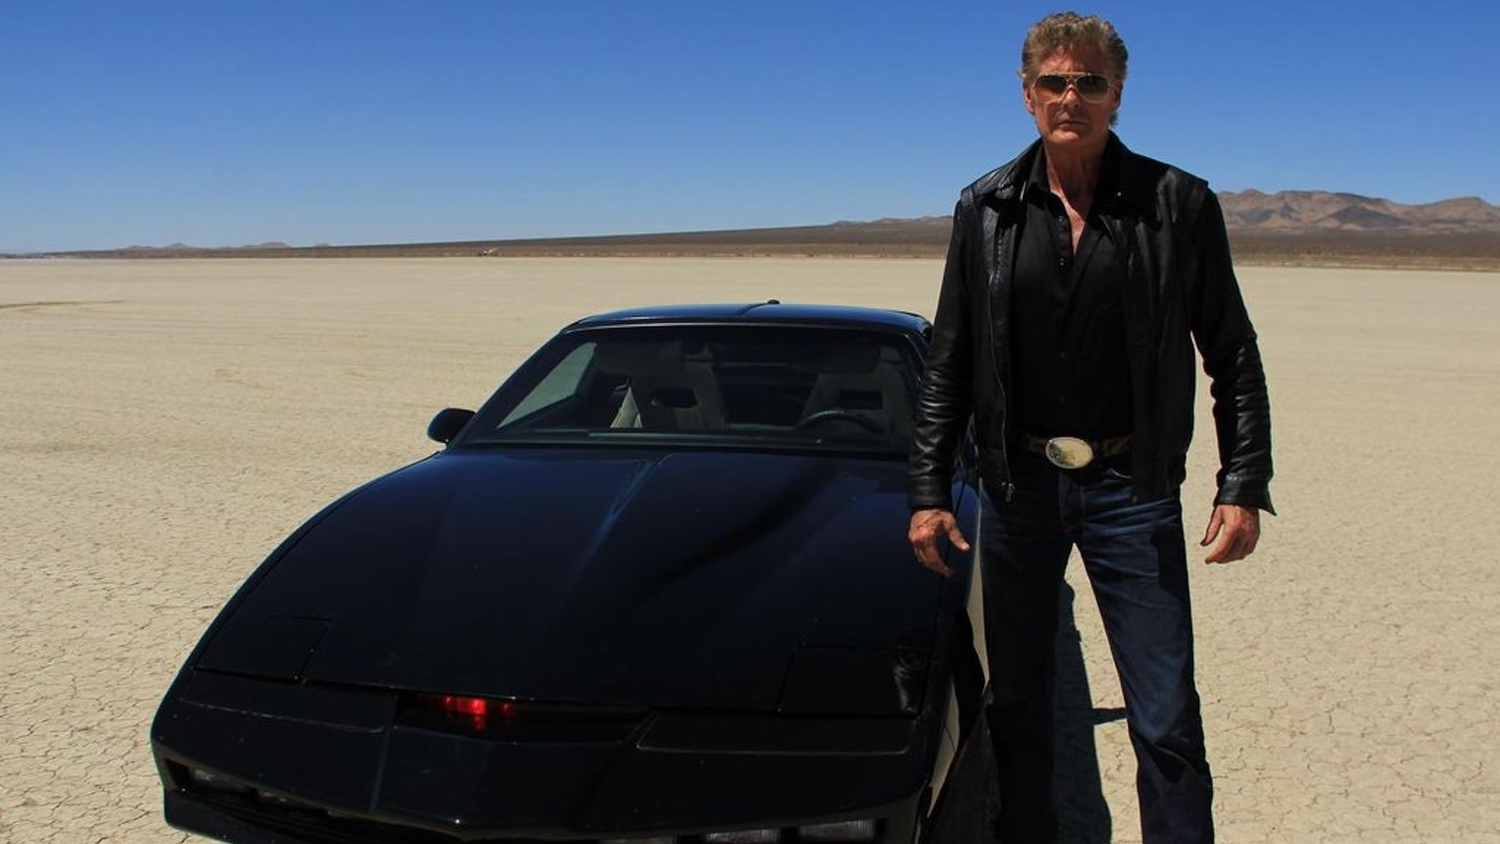 Turn Your Car into K I T T  With This KNIGHT RIDER Inspired USB